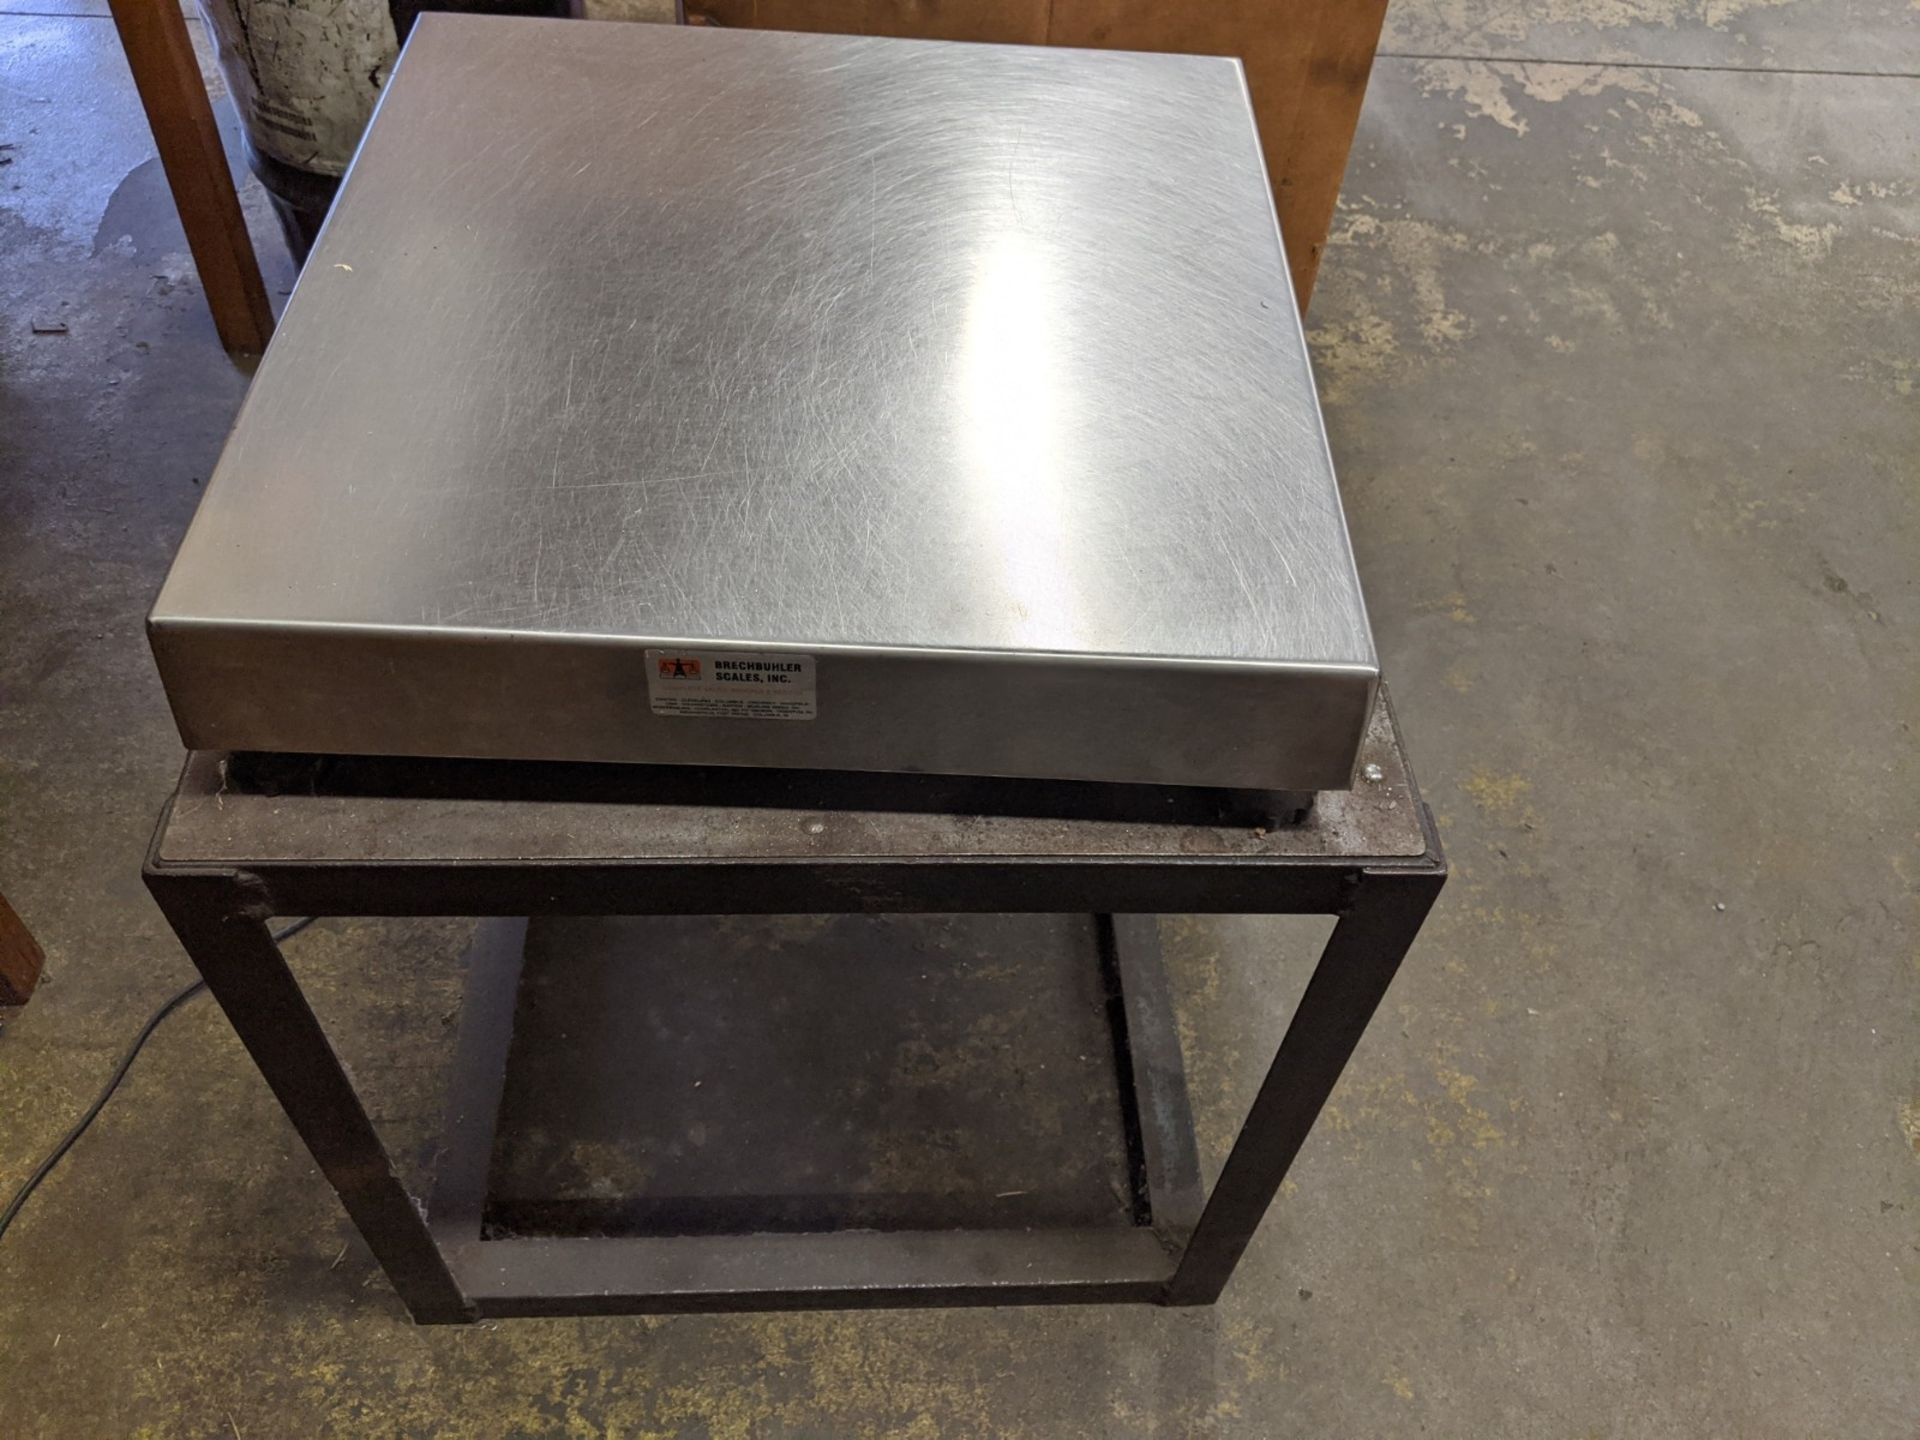 "GSE DIGITAL COUNTING SCALE WITH 20""X20"" PLATFORM - Image 2 of 3"